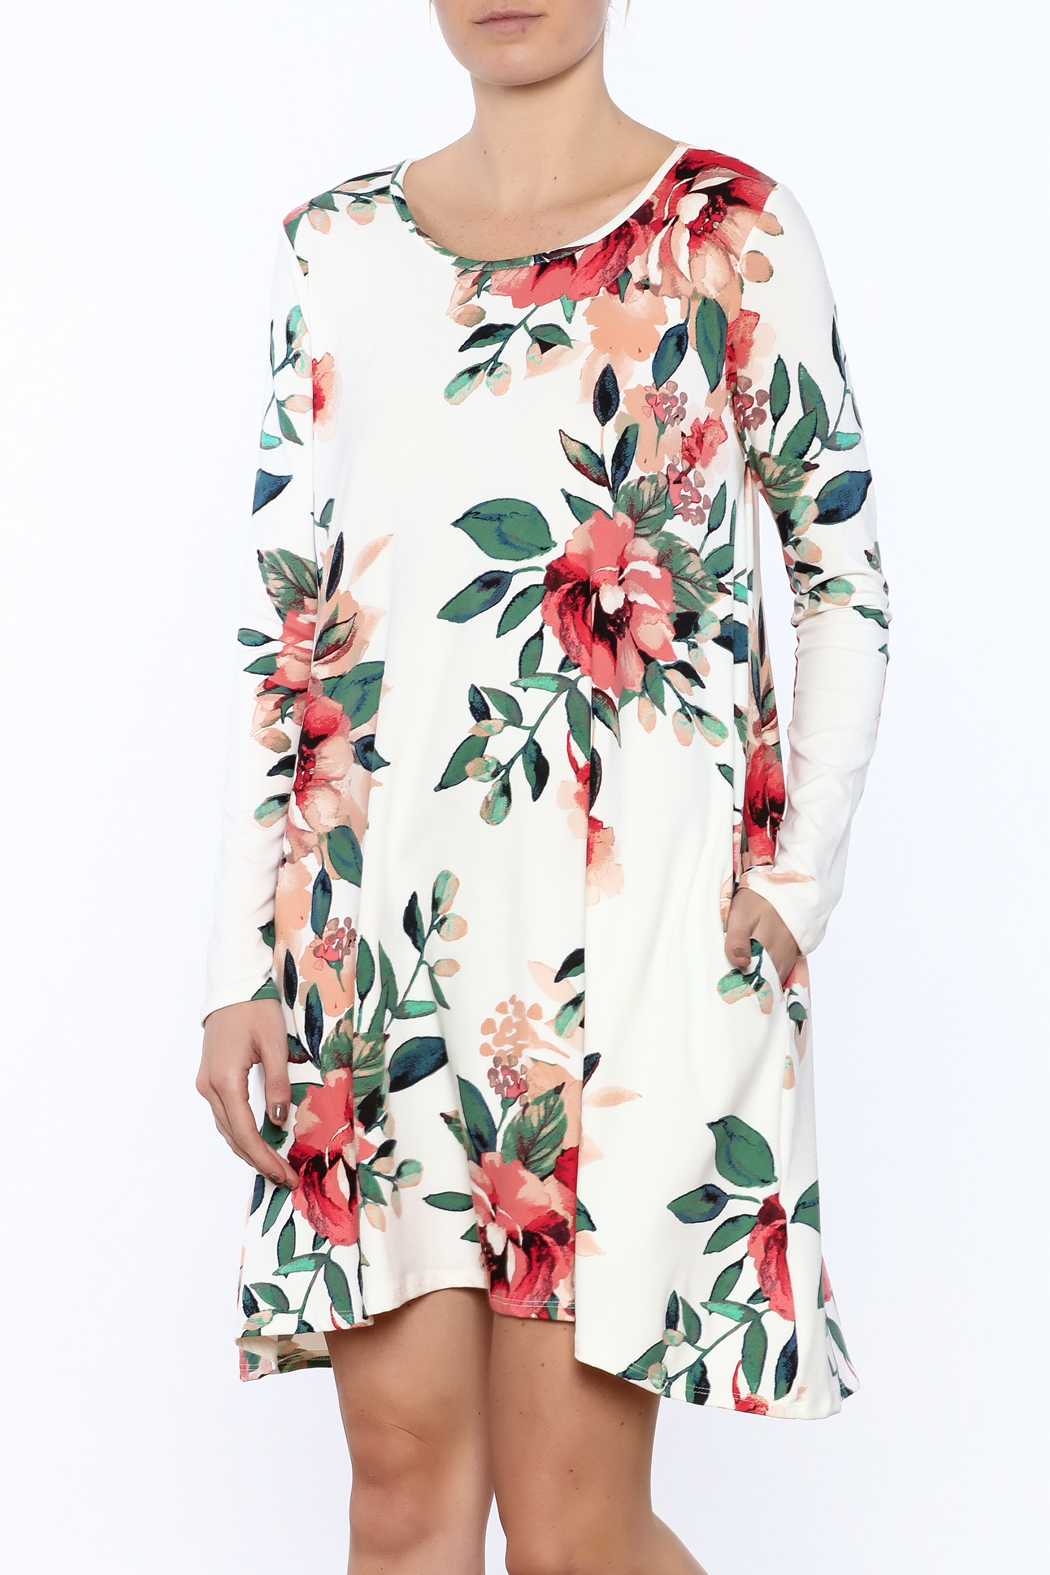 Sweet Pea Floral Pocket Dress From Idaho By Garment